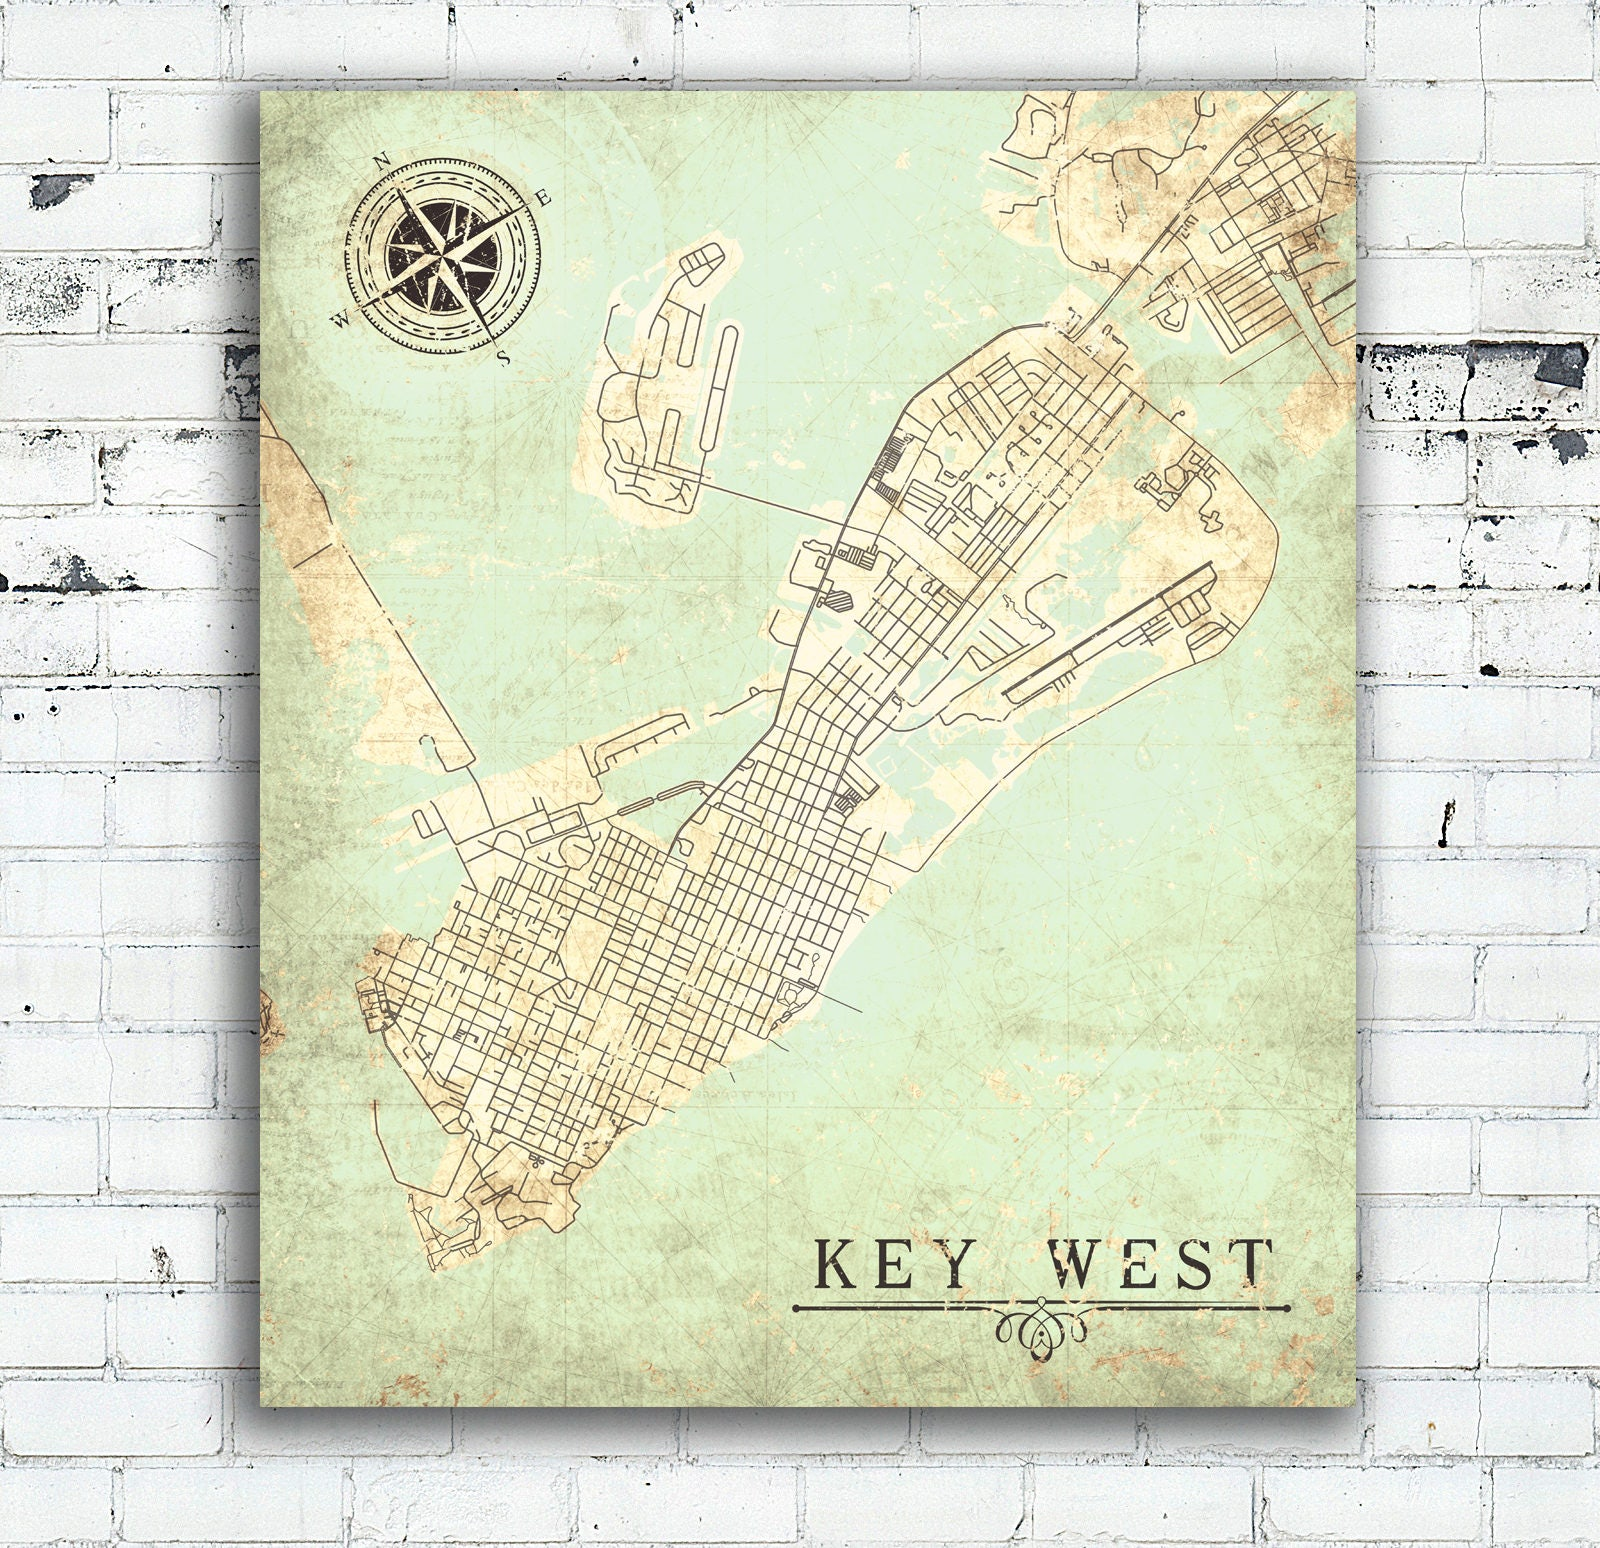 photo regarding Printable Map of Florida Keys titled Secret WEST FL Canvas Print Florida Keys Fl Typical map Town